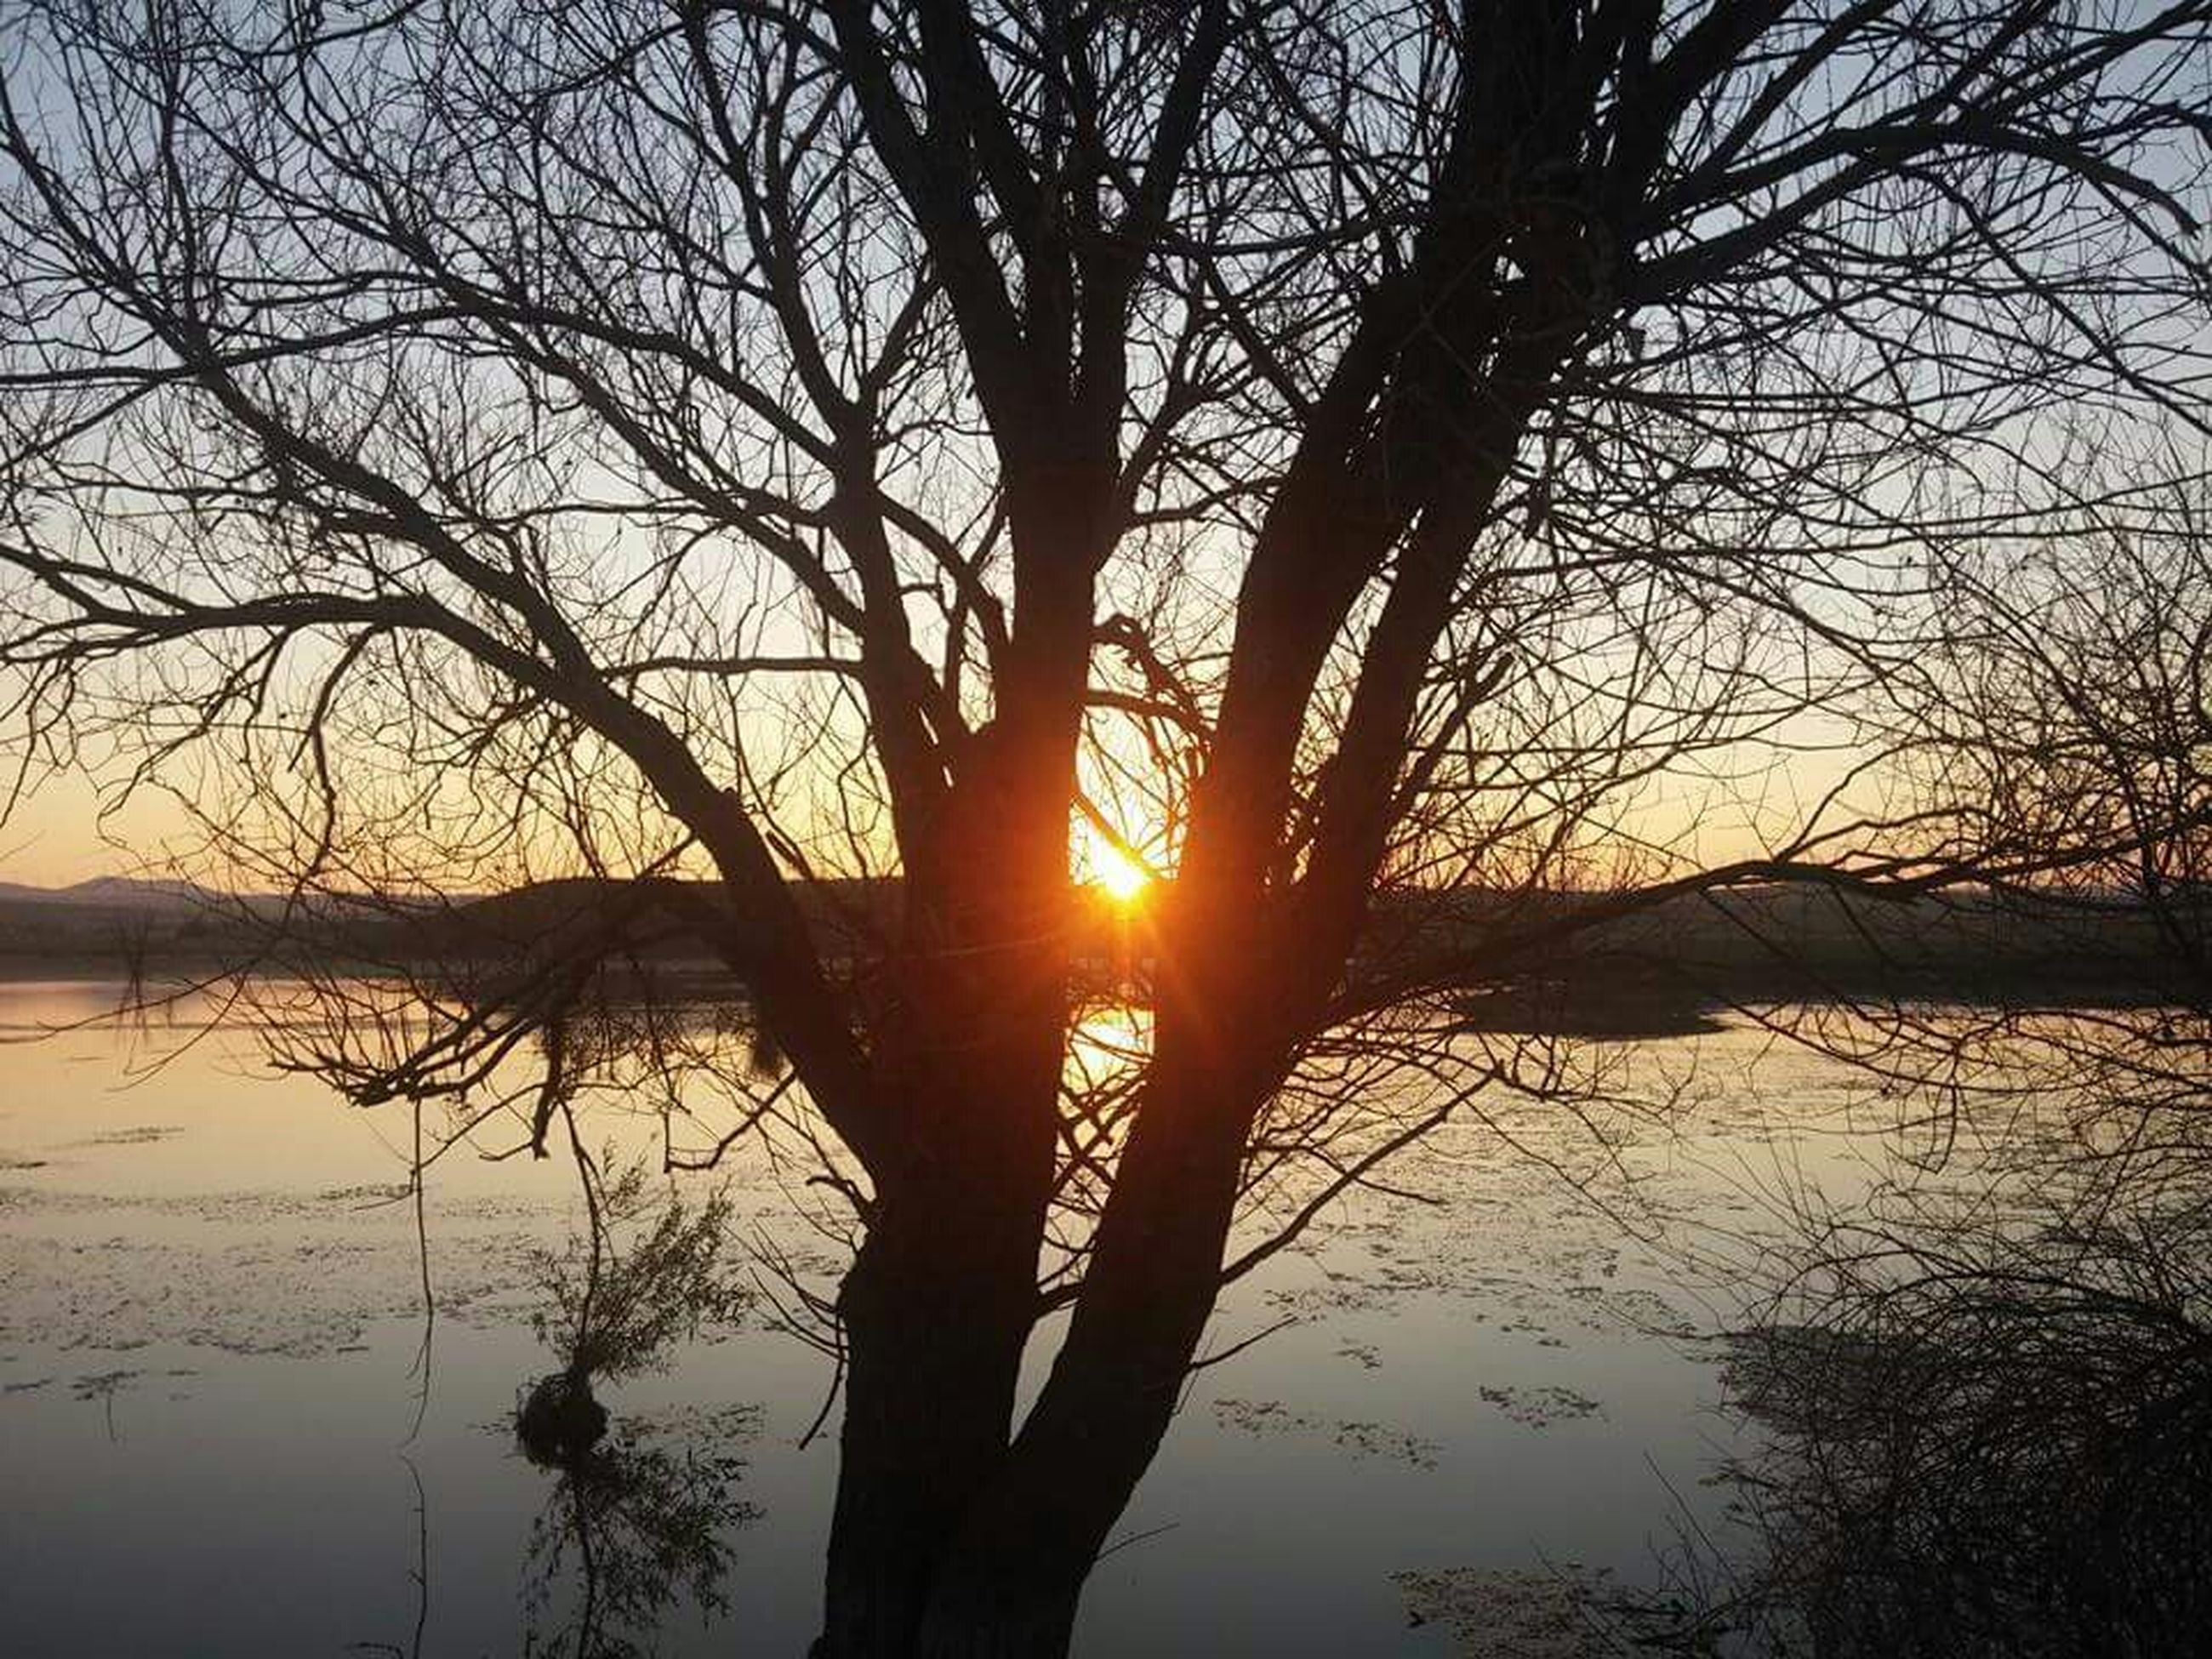 sunset, sun, tranquil scene, silhouette, tranquility, scenics, water, beauty in nature, reflection, tree, nature, lake, sky, sunlight, idyllic, bare tree, orange color, branch, back lit, tree trunk